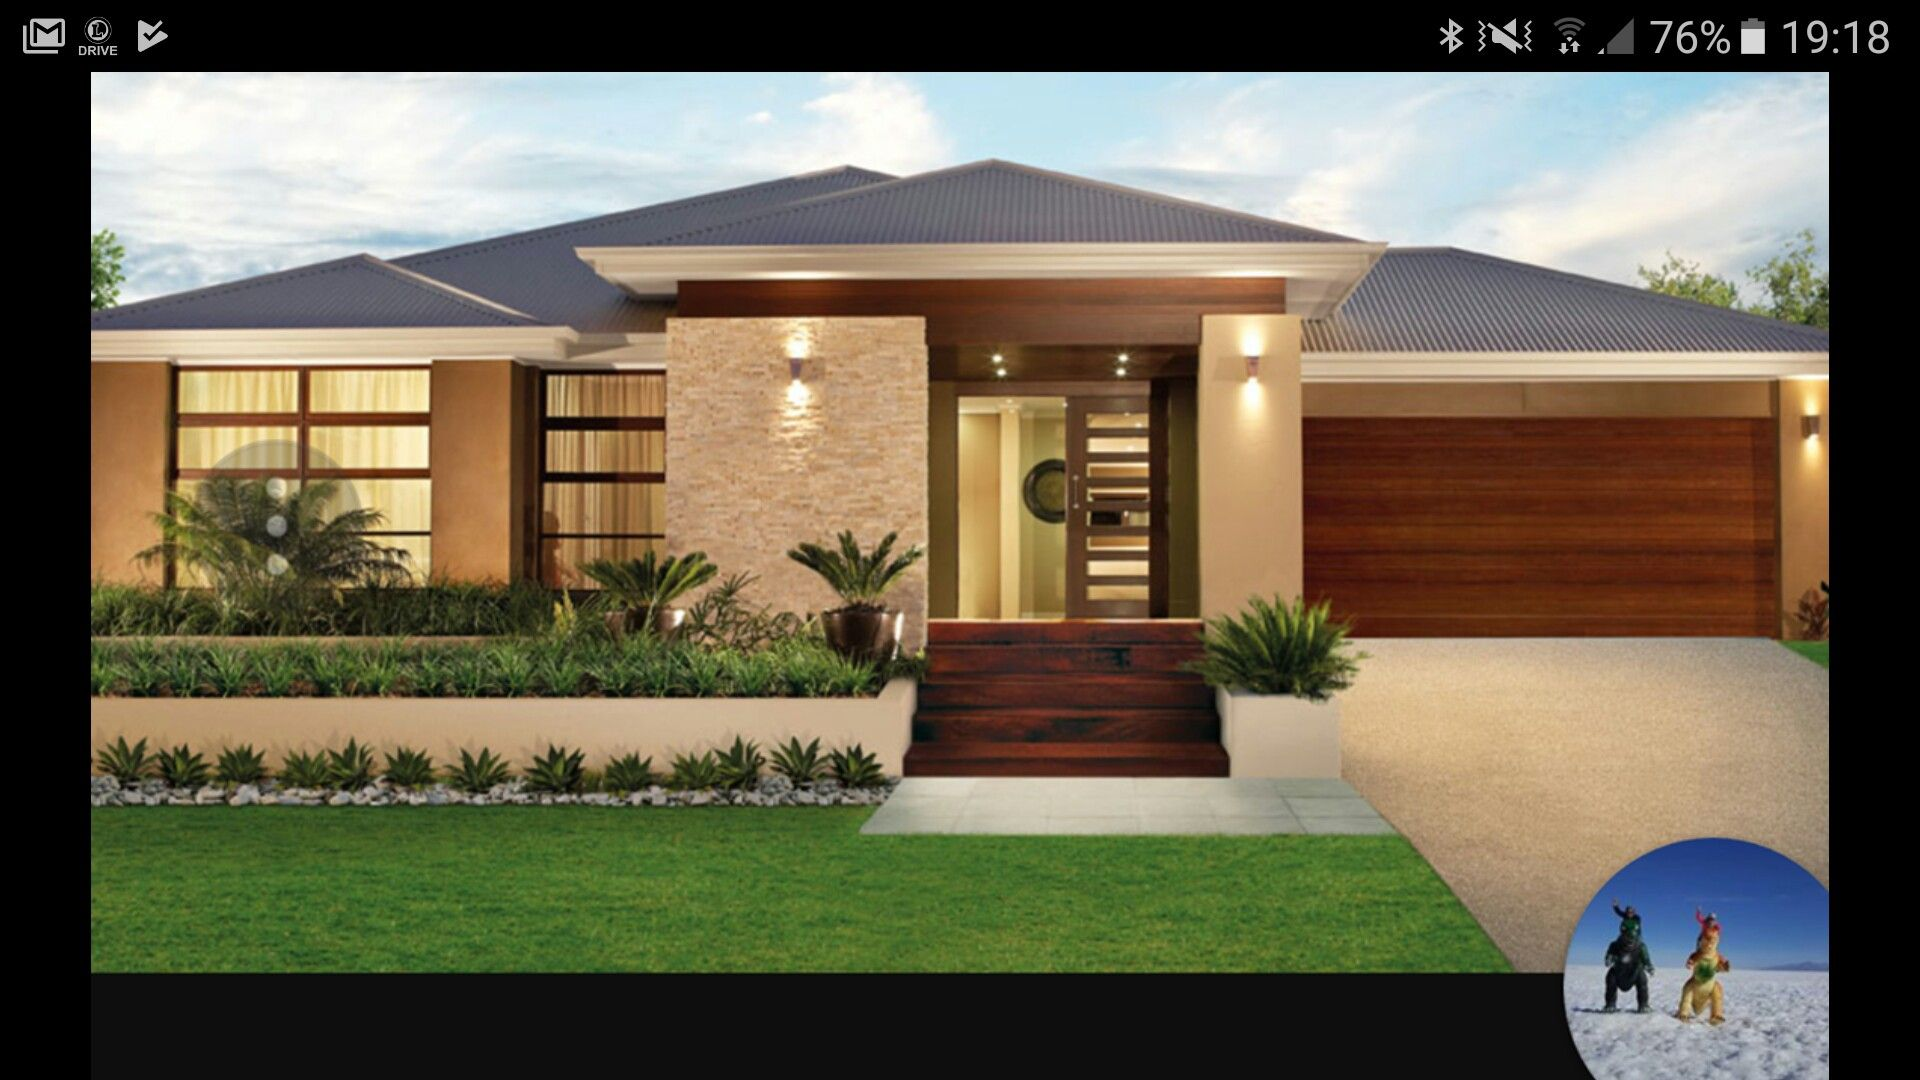 Explore Modern House Design Home Design and